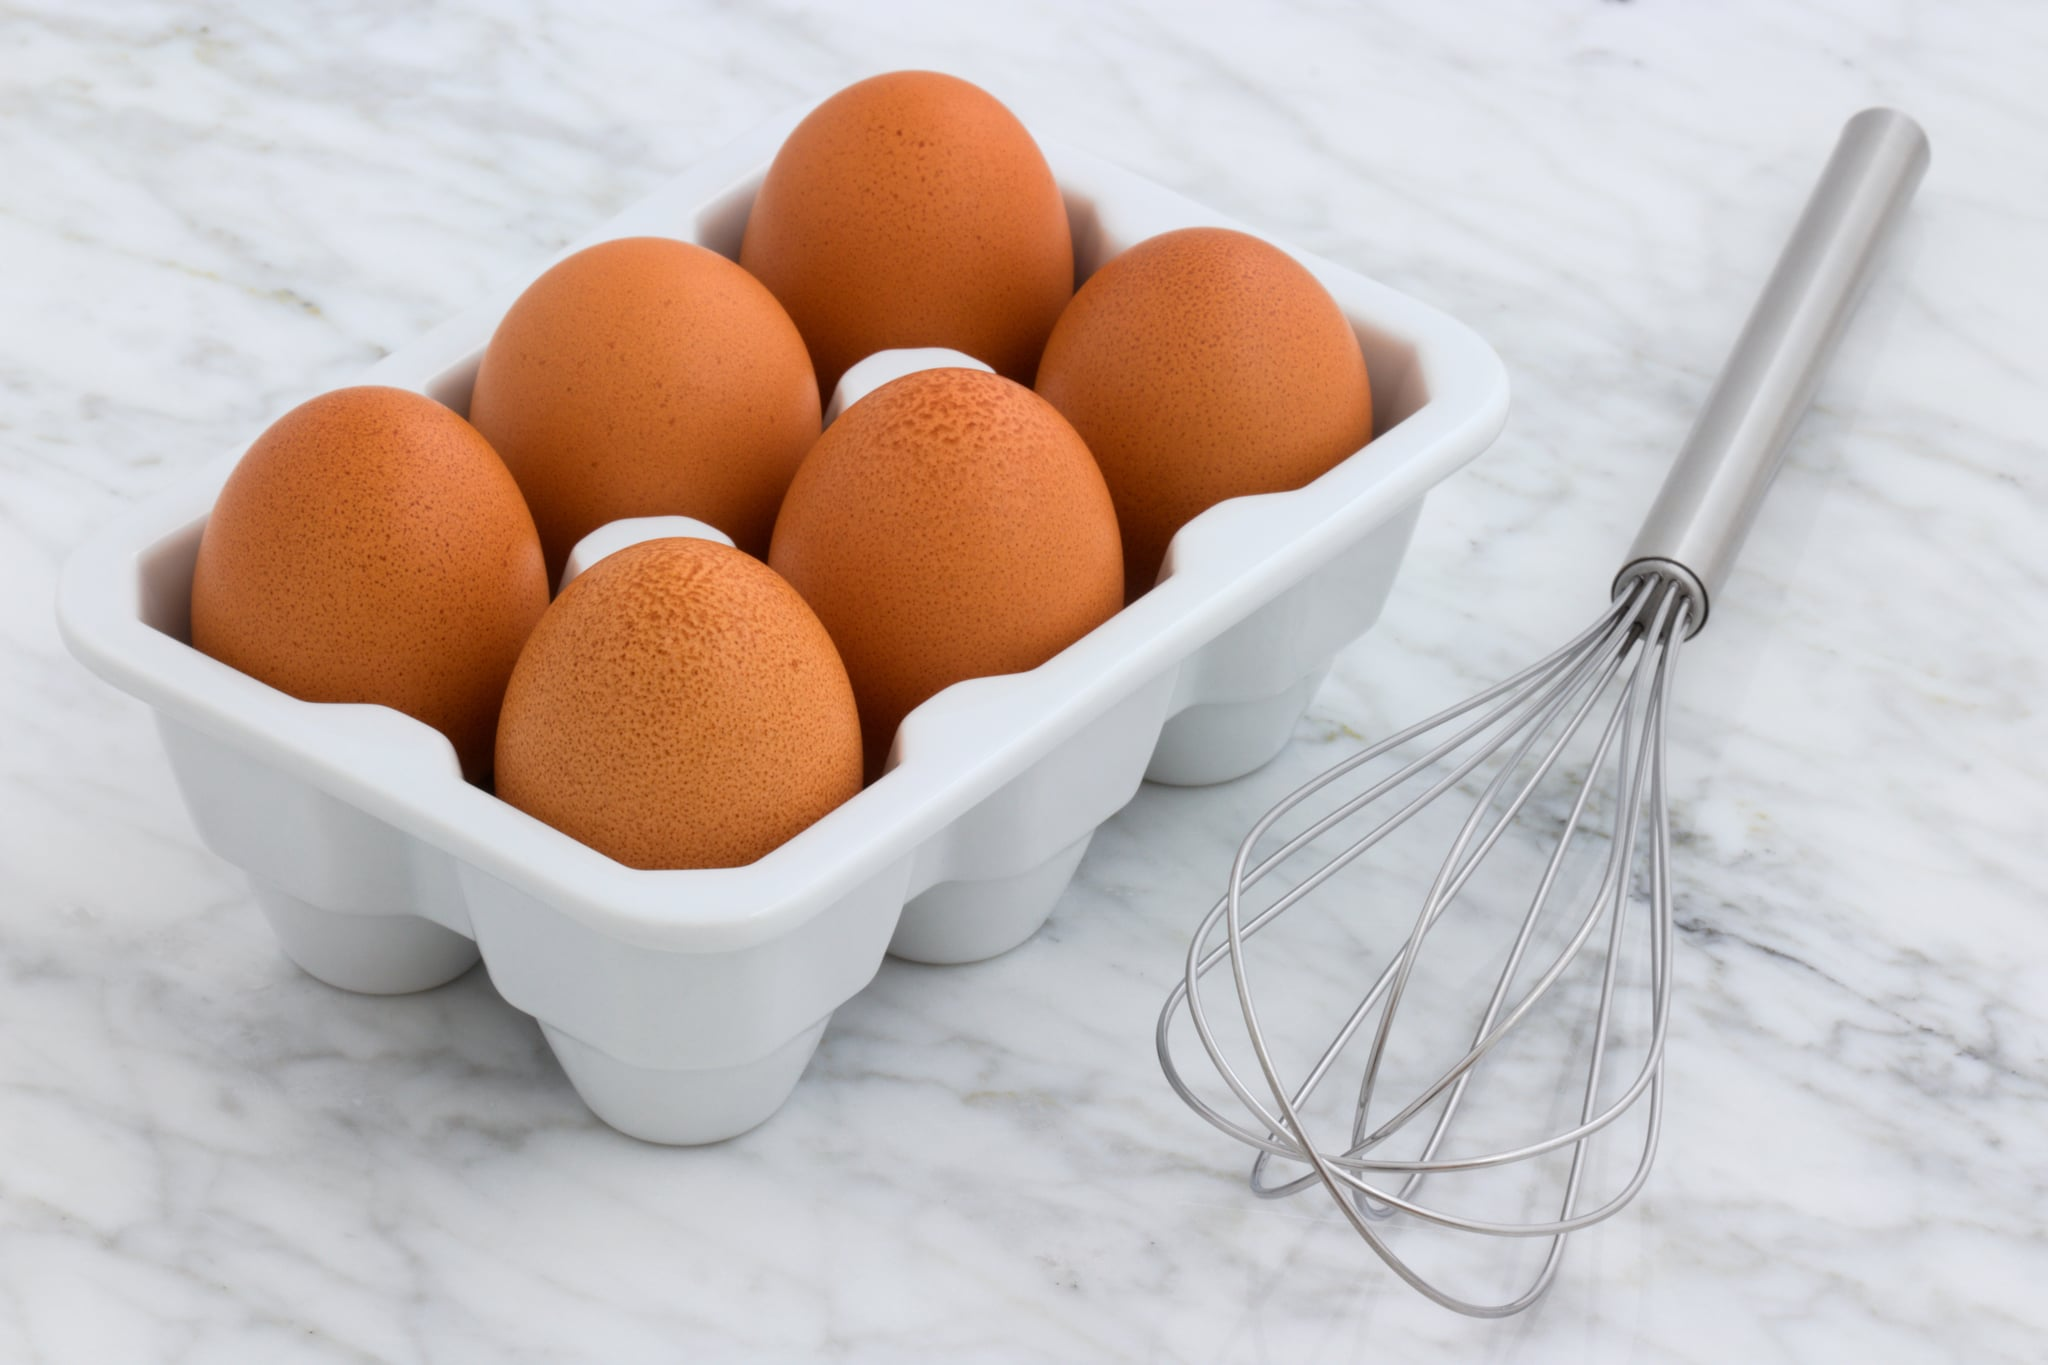 tmp_tjweES_e2e1f5b5f80d4bf5_six-brown-eggs-with-tray-2959303.jpg